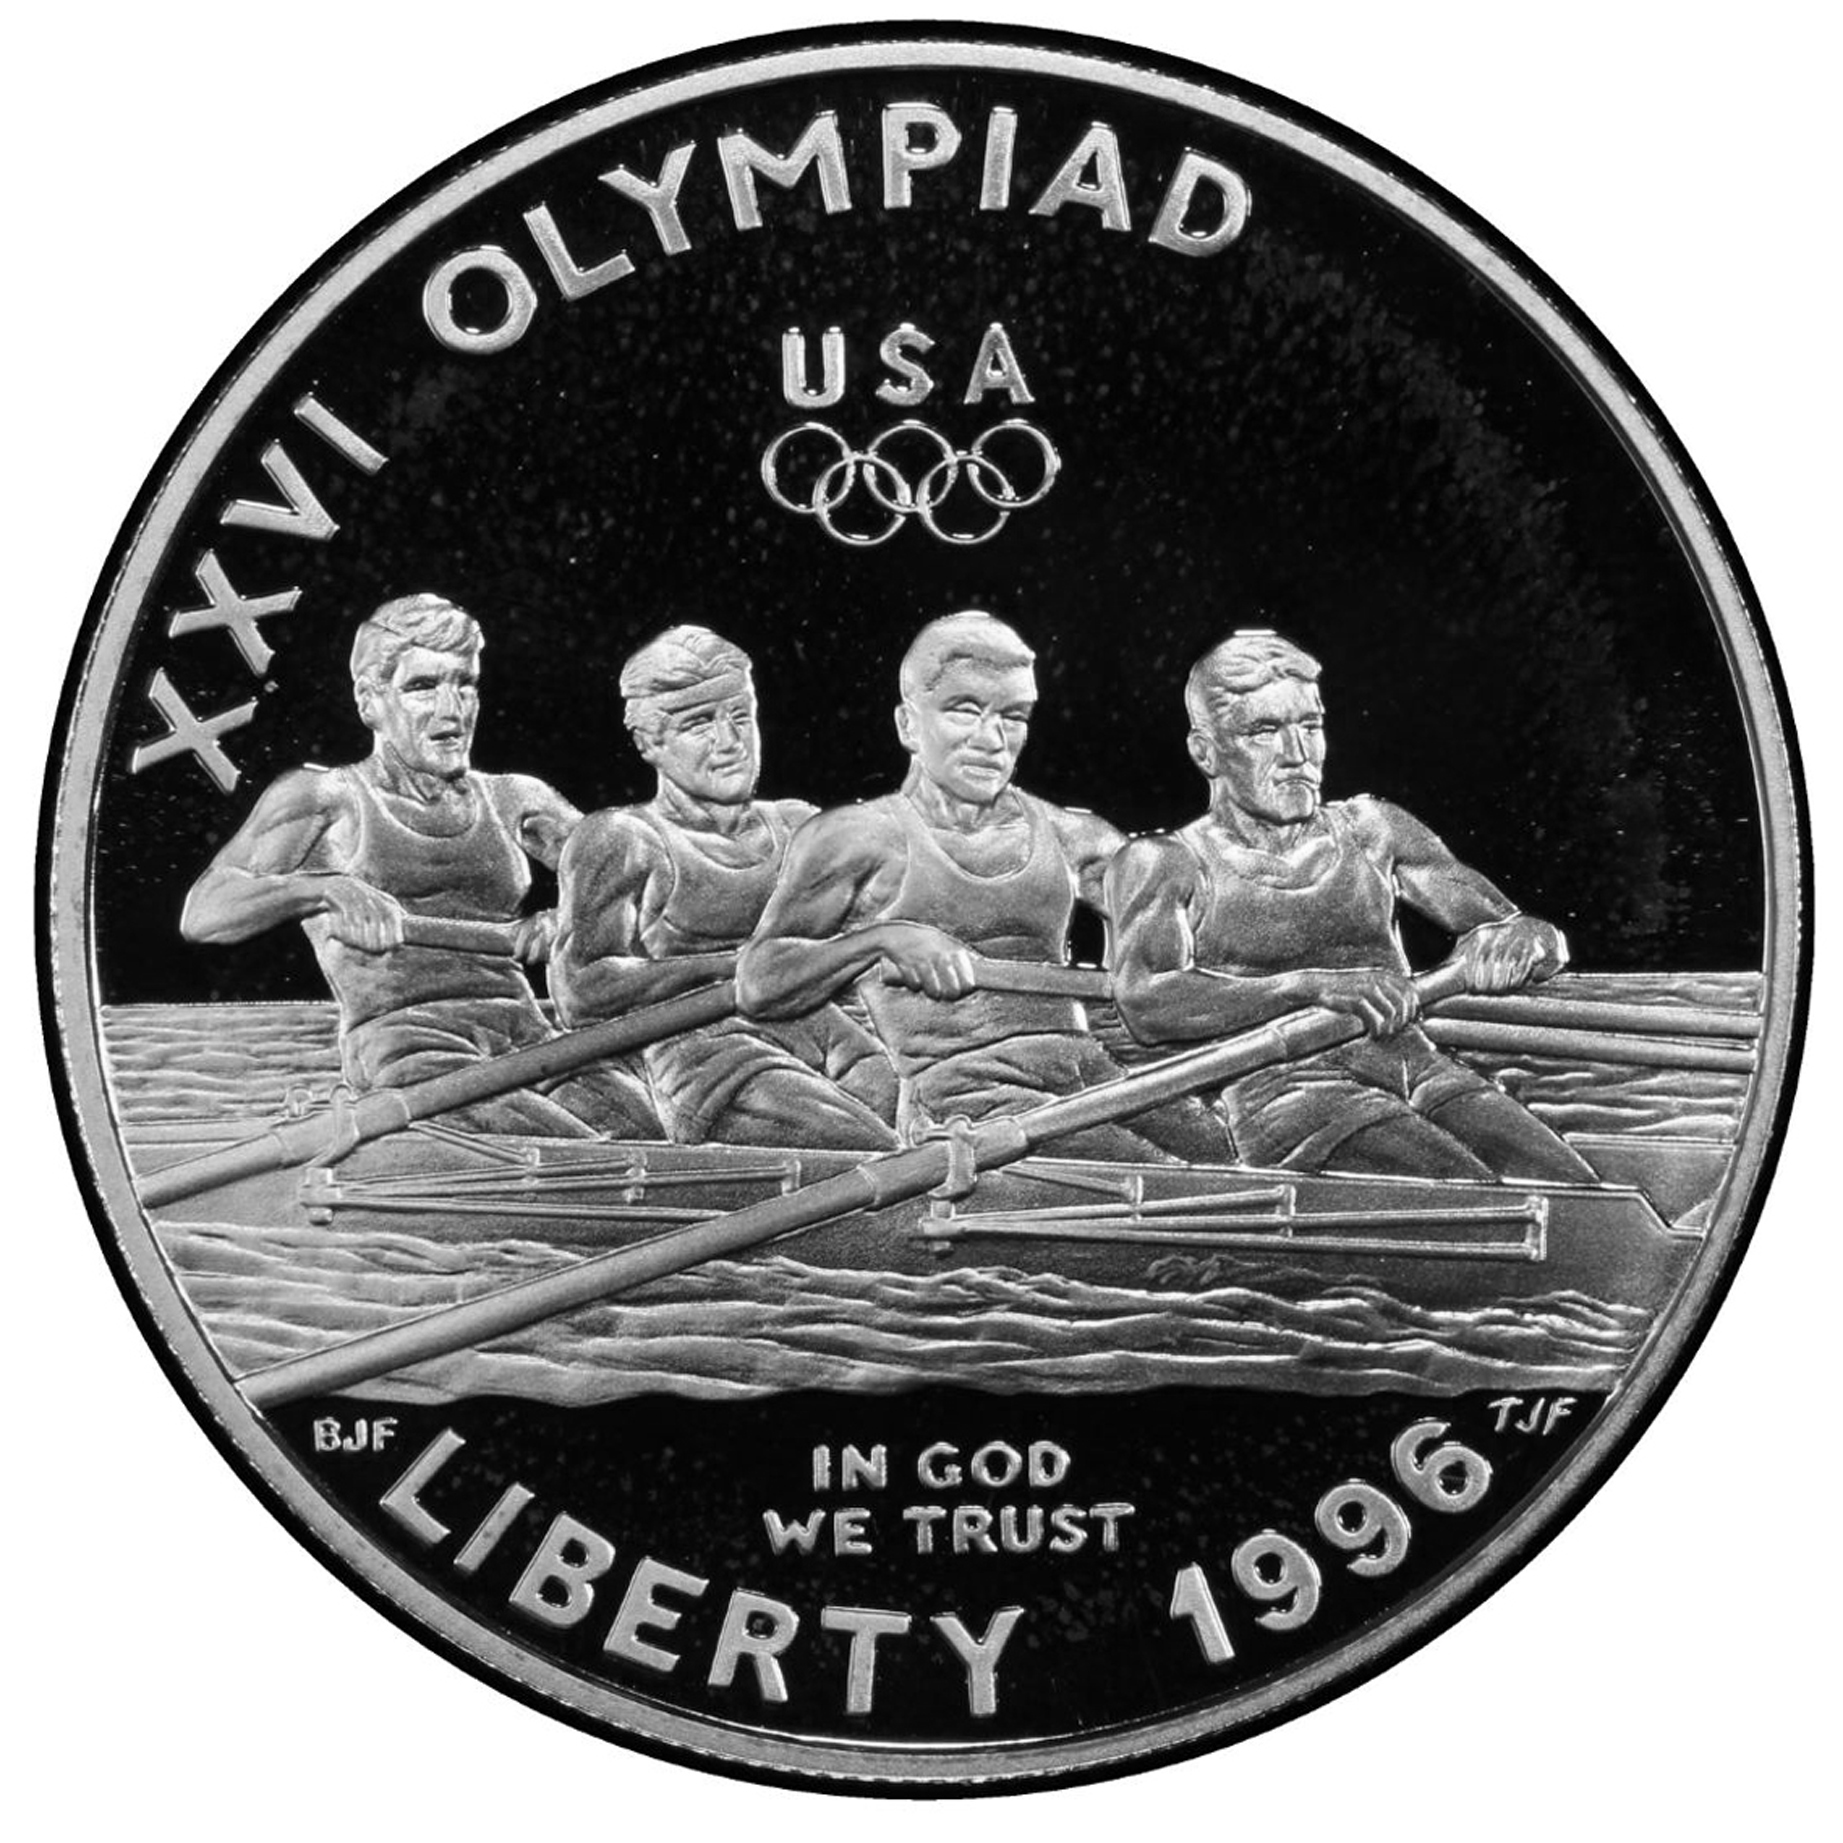 1996 US Olympic Atlanta ROWING Proof Silver Dollar Commemorative Coin